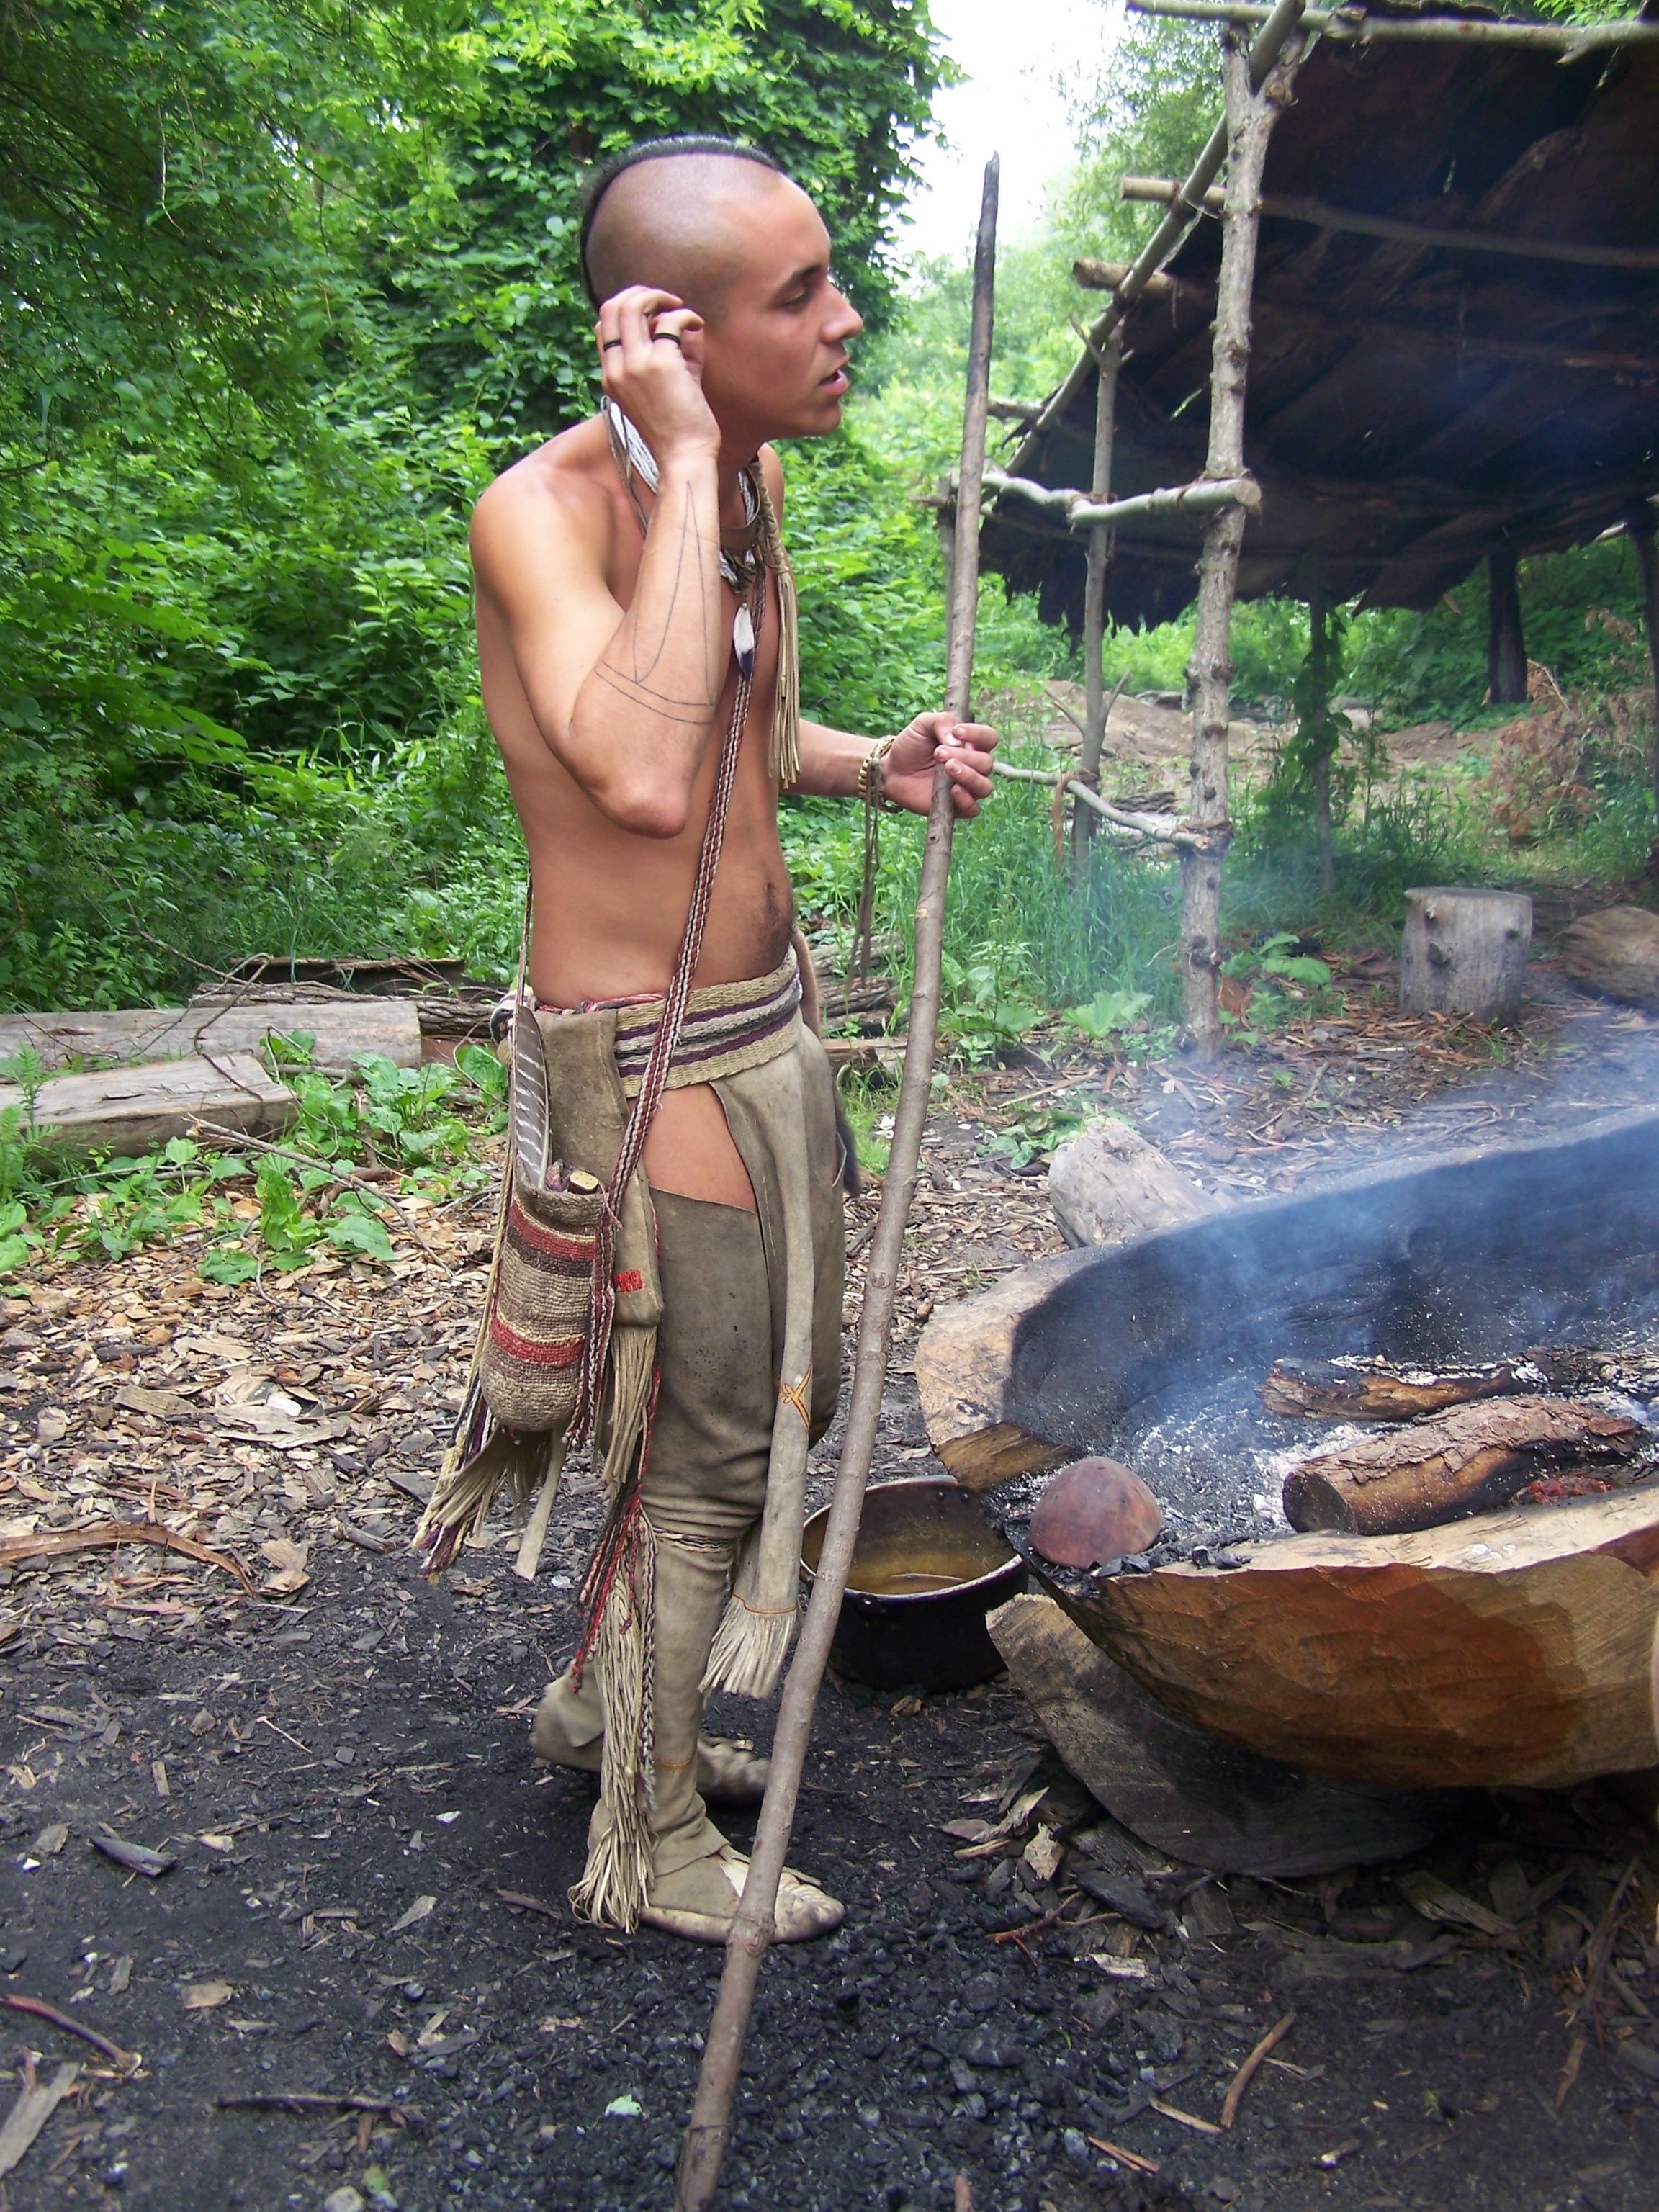 wampanoag and pilgrims relationship with natives